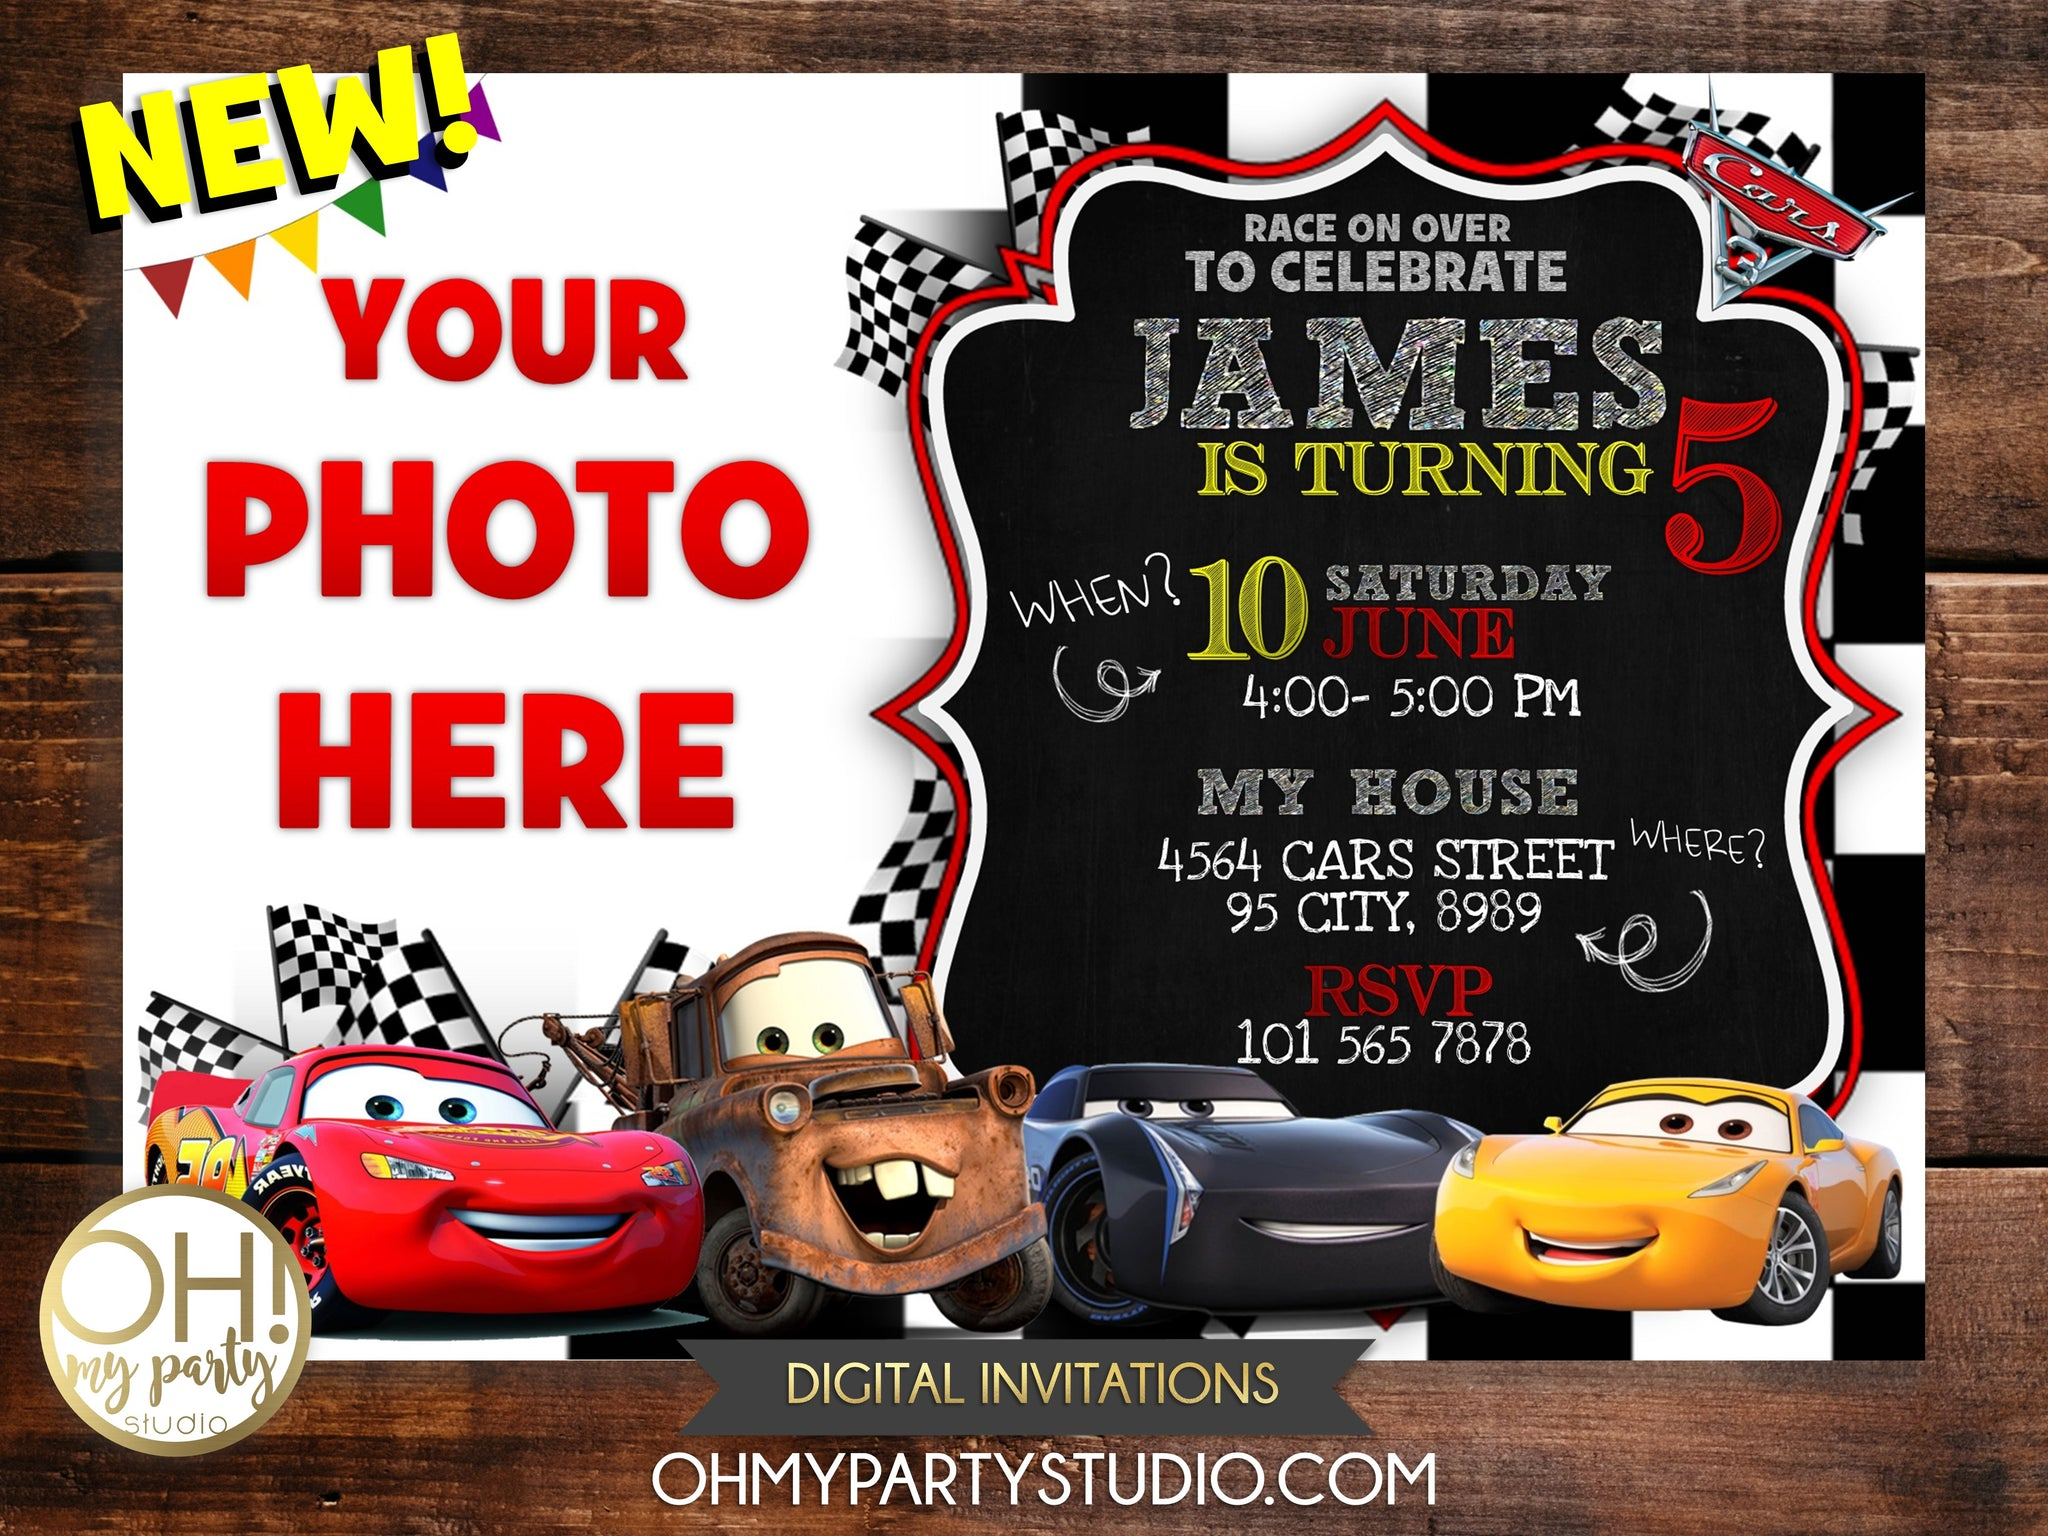 CARS BIRTHDAY PARTY, CARS INVITATION, CARS INVITATIONS, CARS PARTY, CARS PARTY INVITATION, CARS PRINTABLE, CARS INVITATION DIGITAL